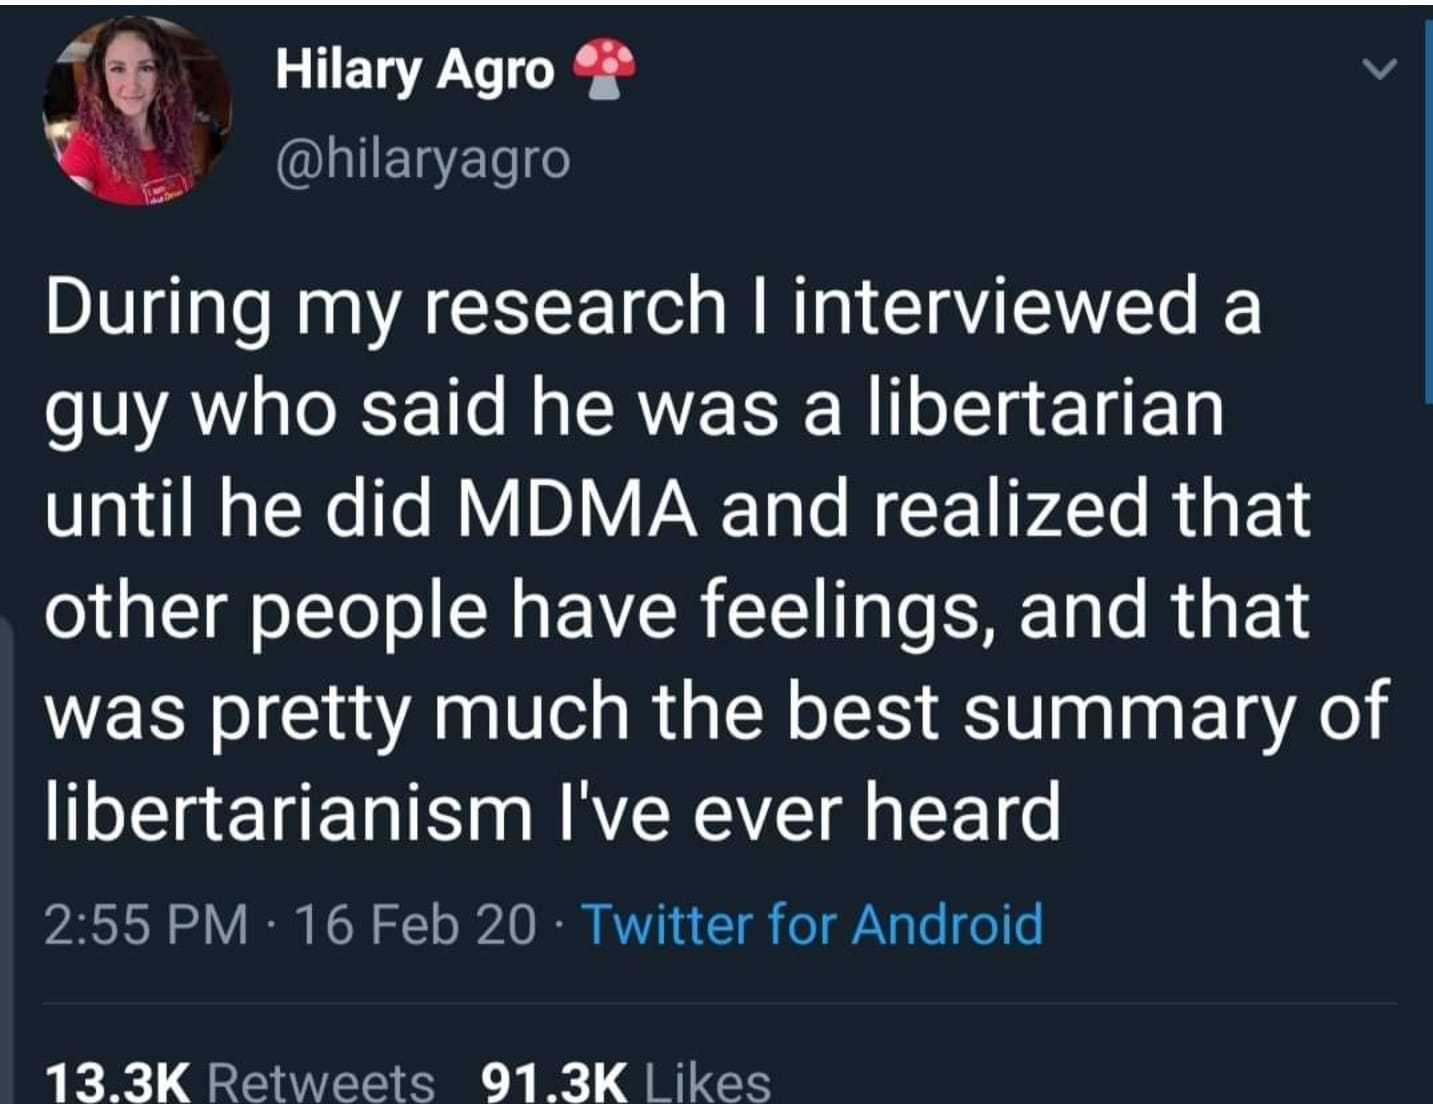 during my research i interviewed a guy who said he was a libertarian until he did mdma and realized that other people have feelings, and that was pretty much the best summary of libertarianism i've ever heard